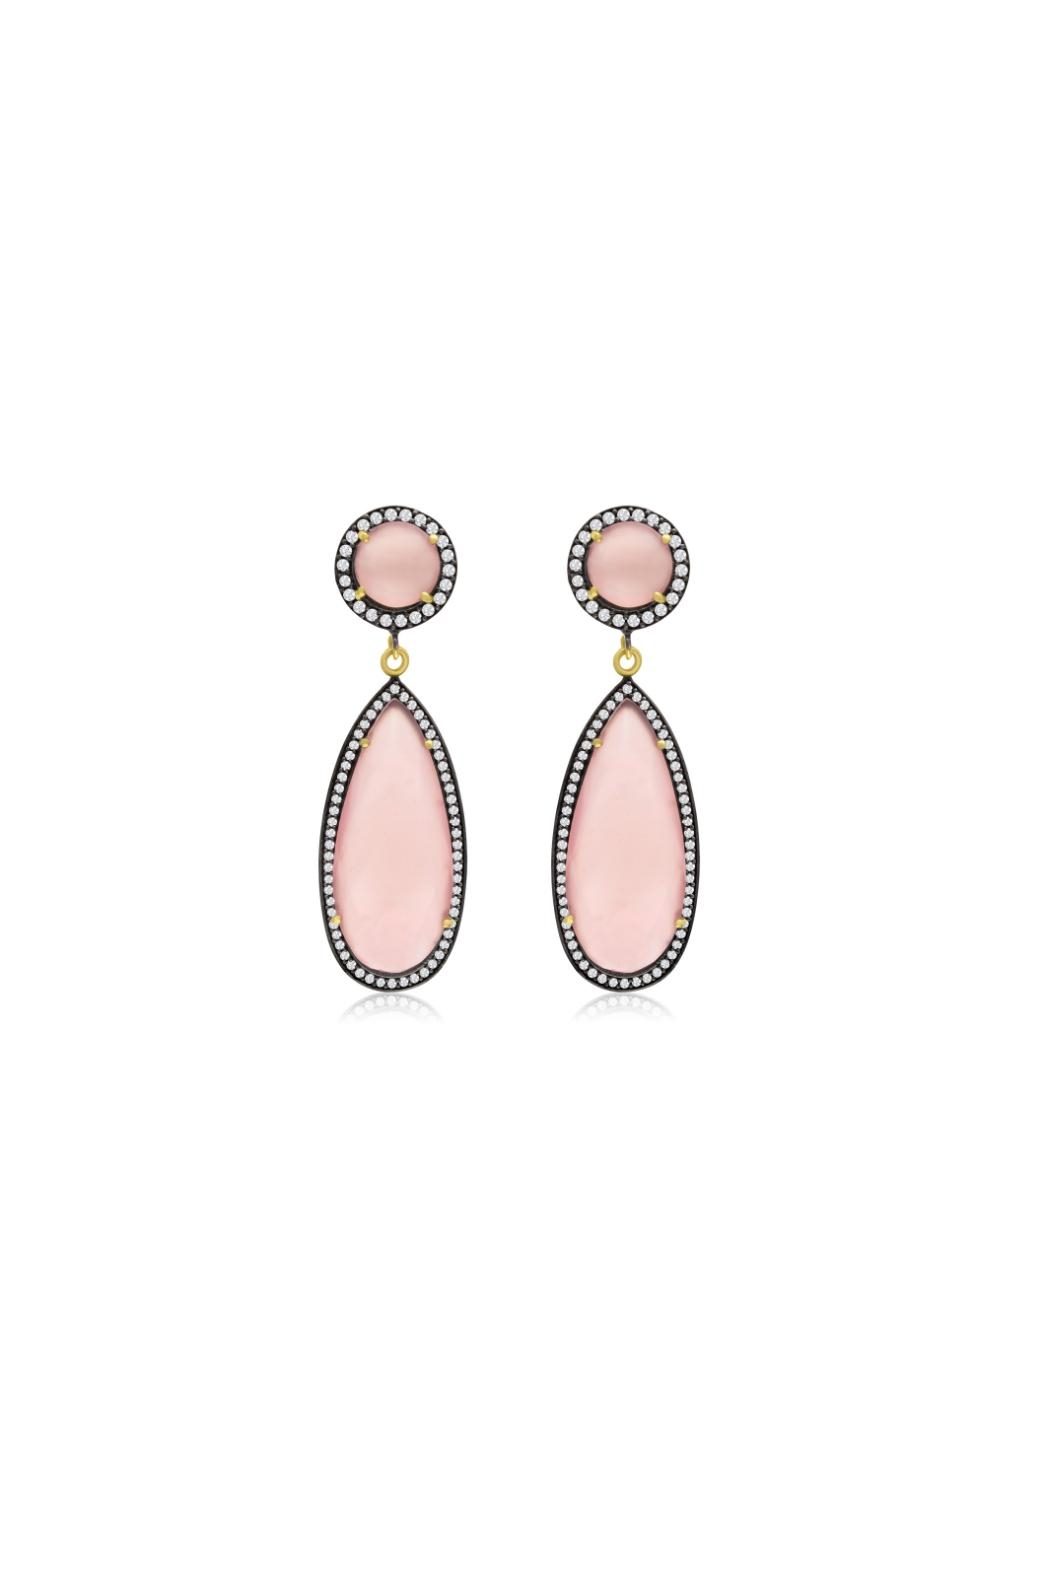 6th Borough Boutique Rose Tina Earrings - Main Image